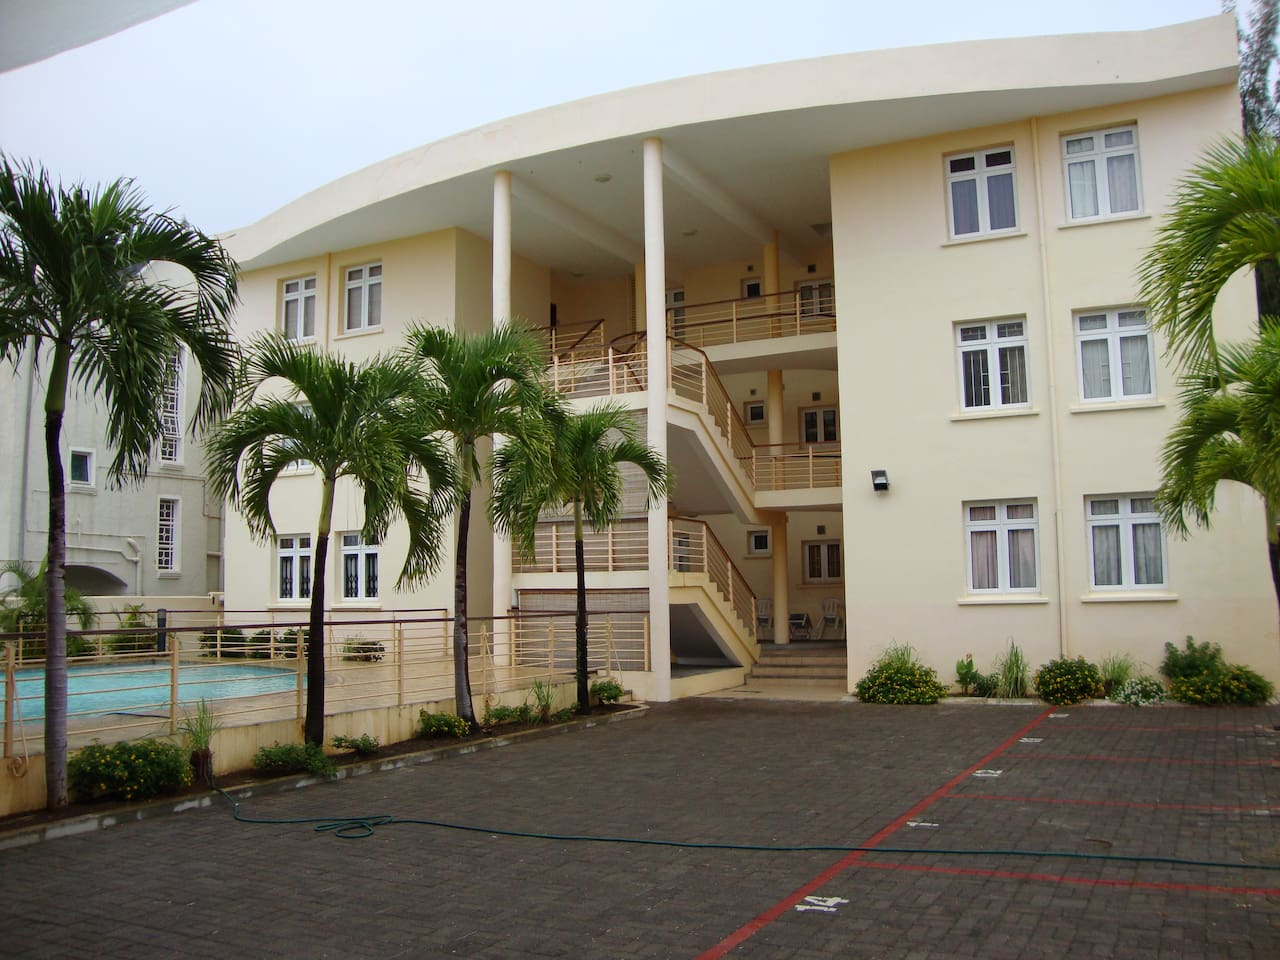 Rear view of the building where the apartment is on the first floor